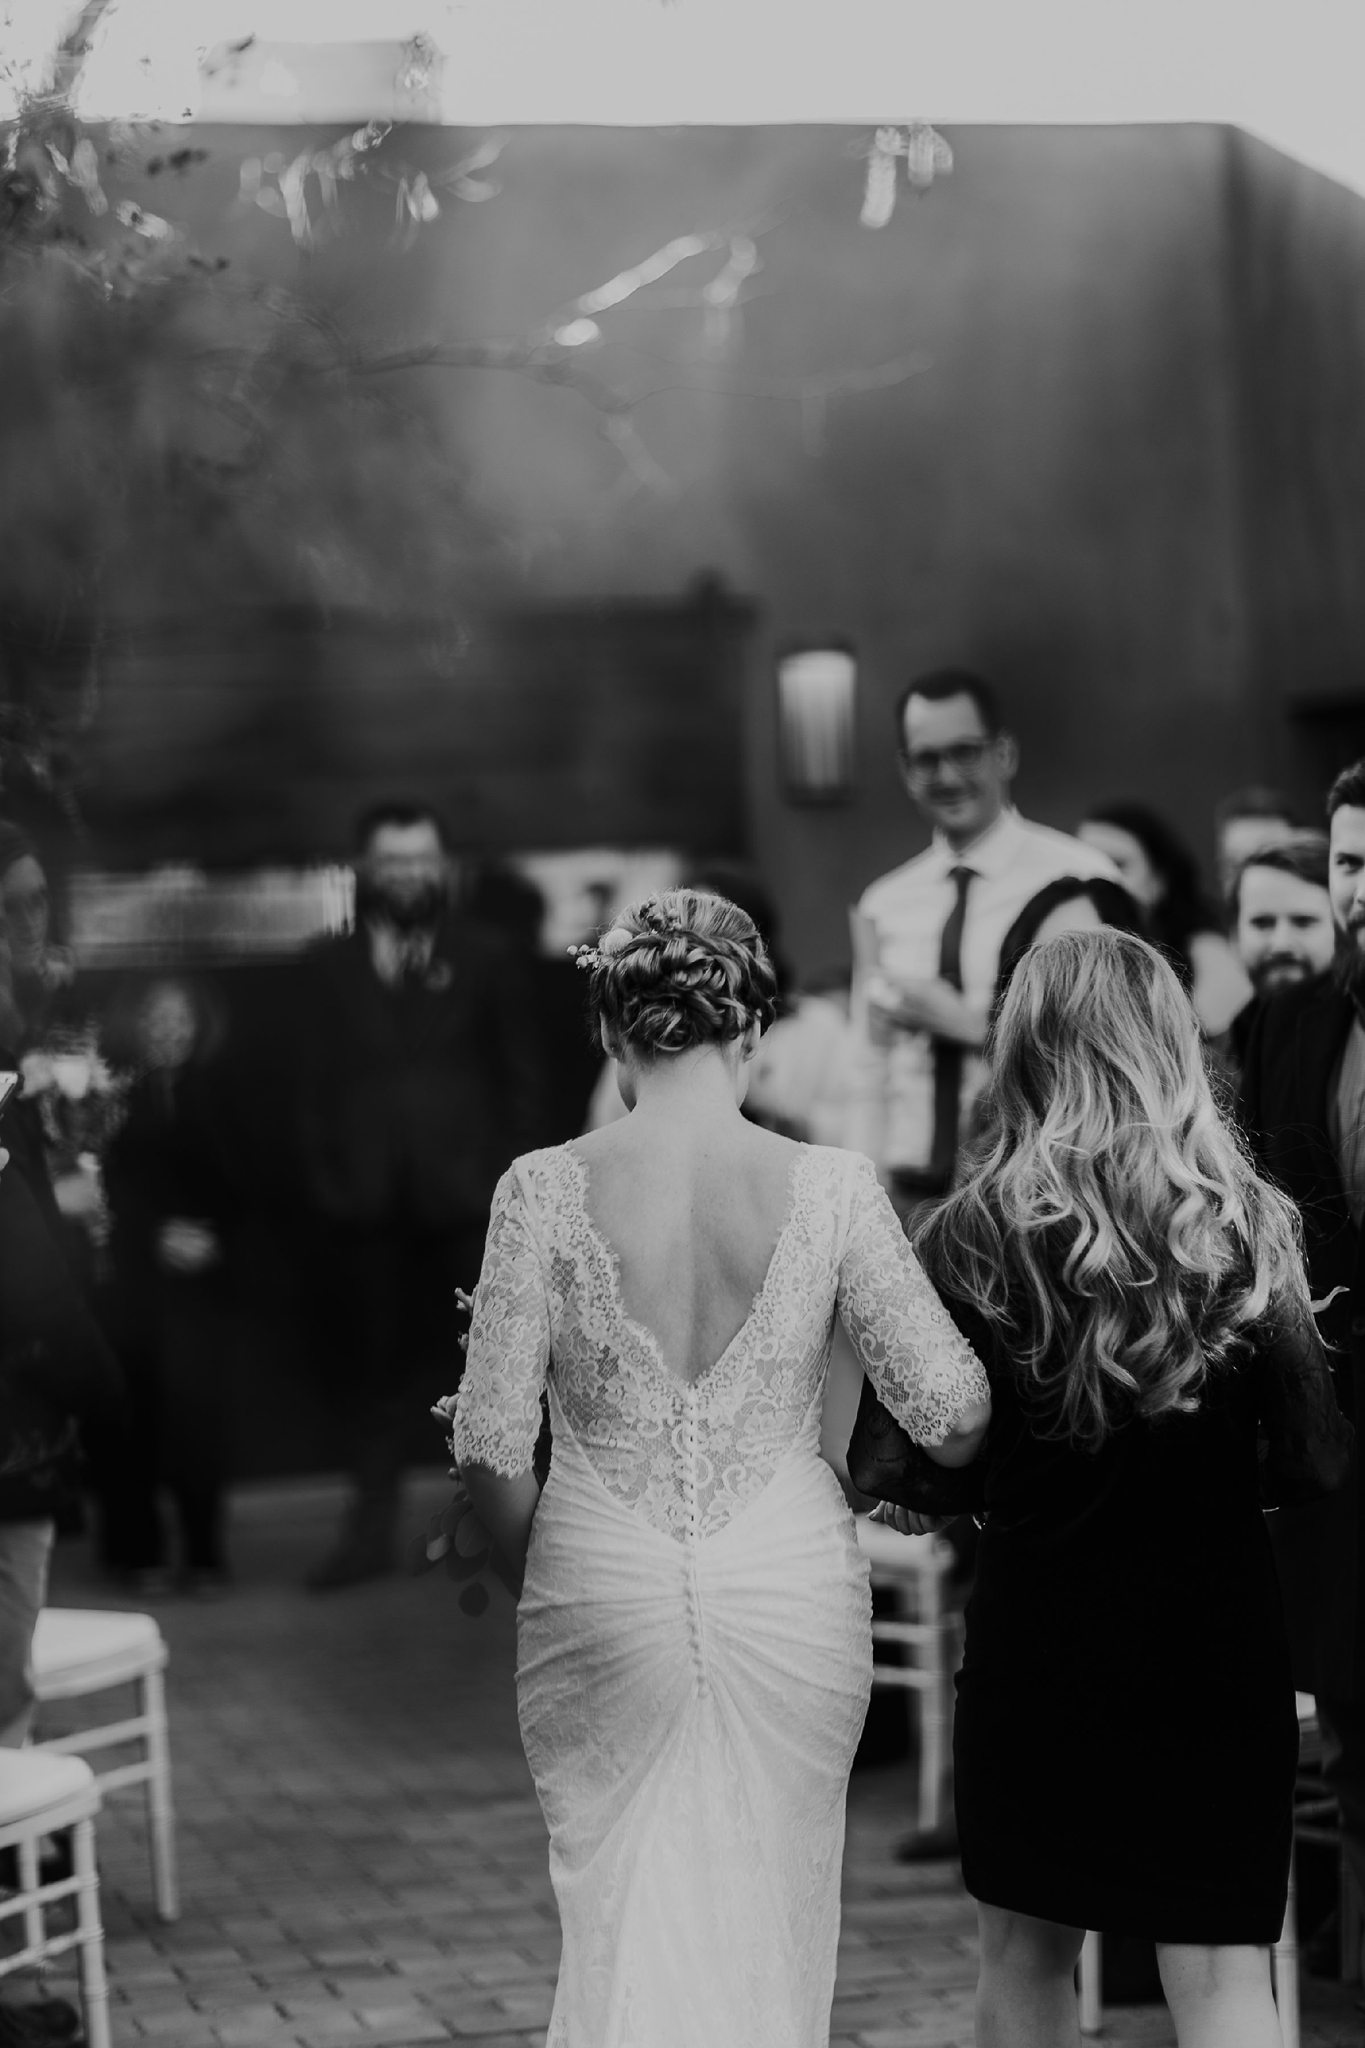 Alicia+lucia+photography+-+albuquerque+wedding+photographer+-+santa+fe+wedding+photography+-+new+mexico+wedding+photographer+-+albuquerque+wedding+-+sarabande+bed+breakfast+-+bed+and+breakfast+wedding_0047.jpg